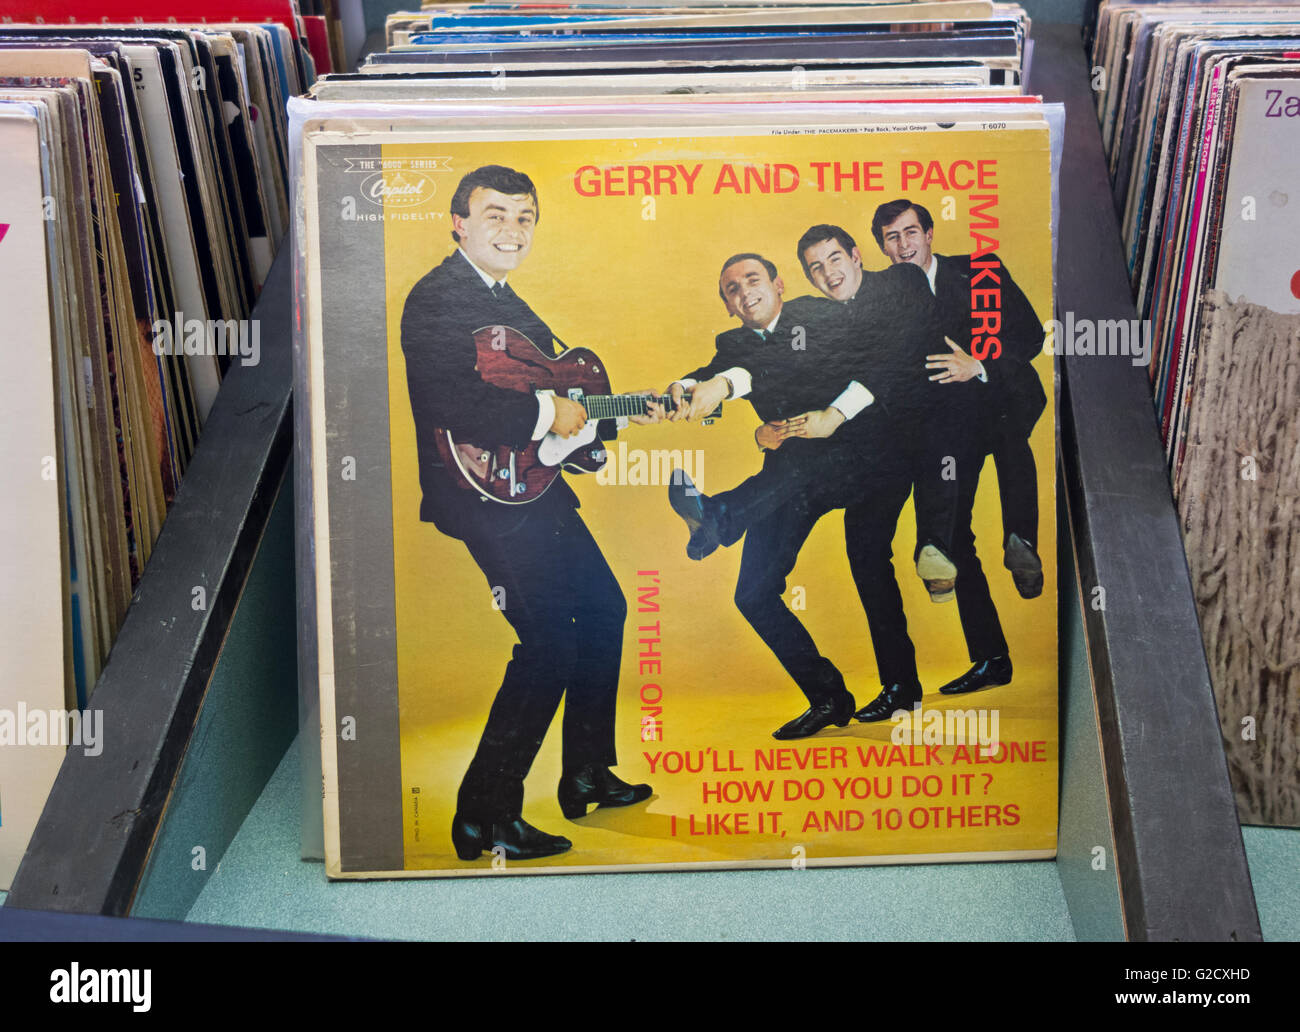 Album Covers Stock Photos & Album Covers Stock Images - Alamy